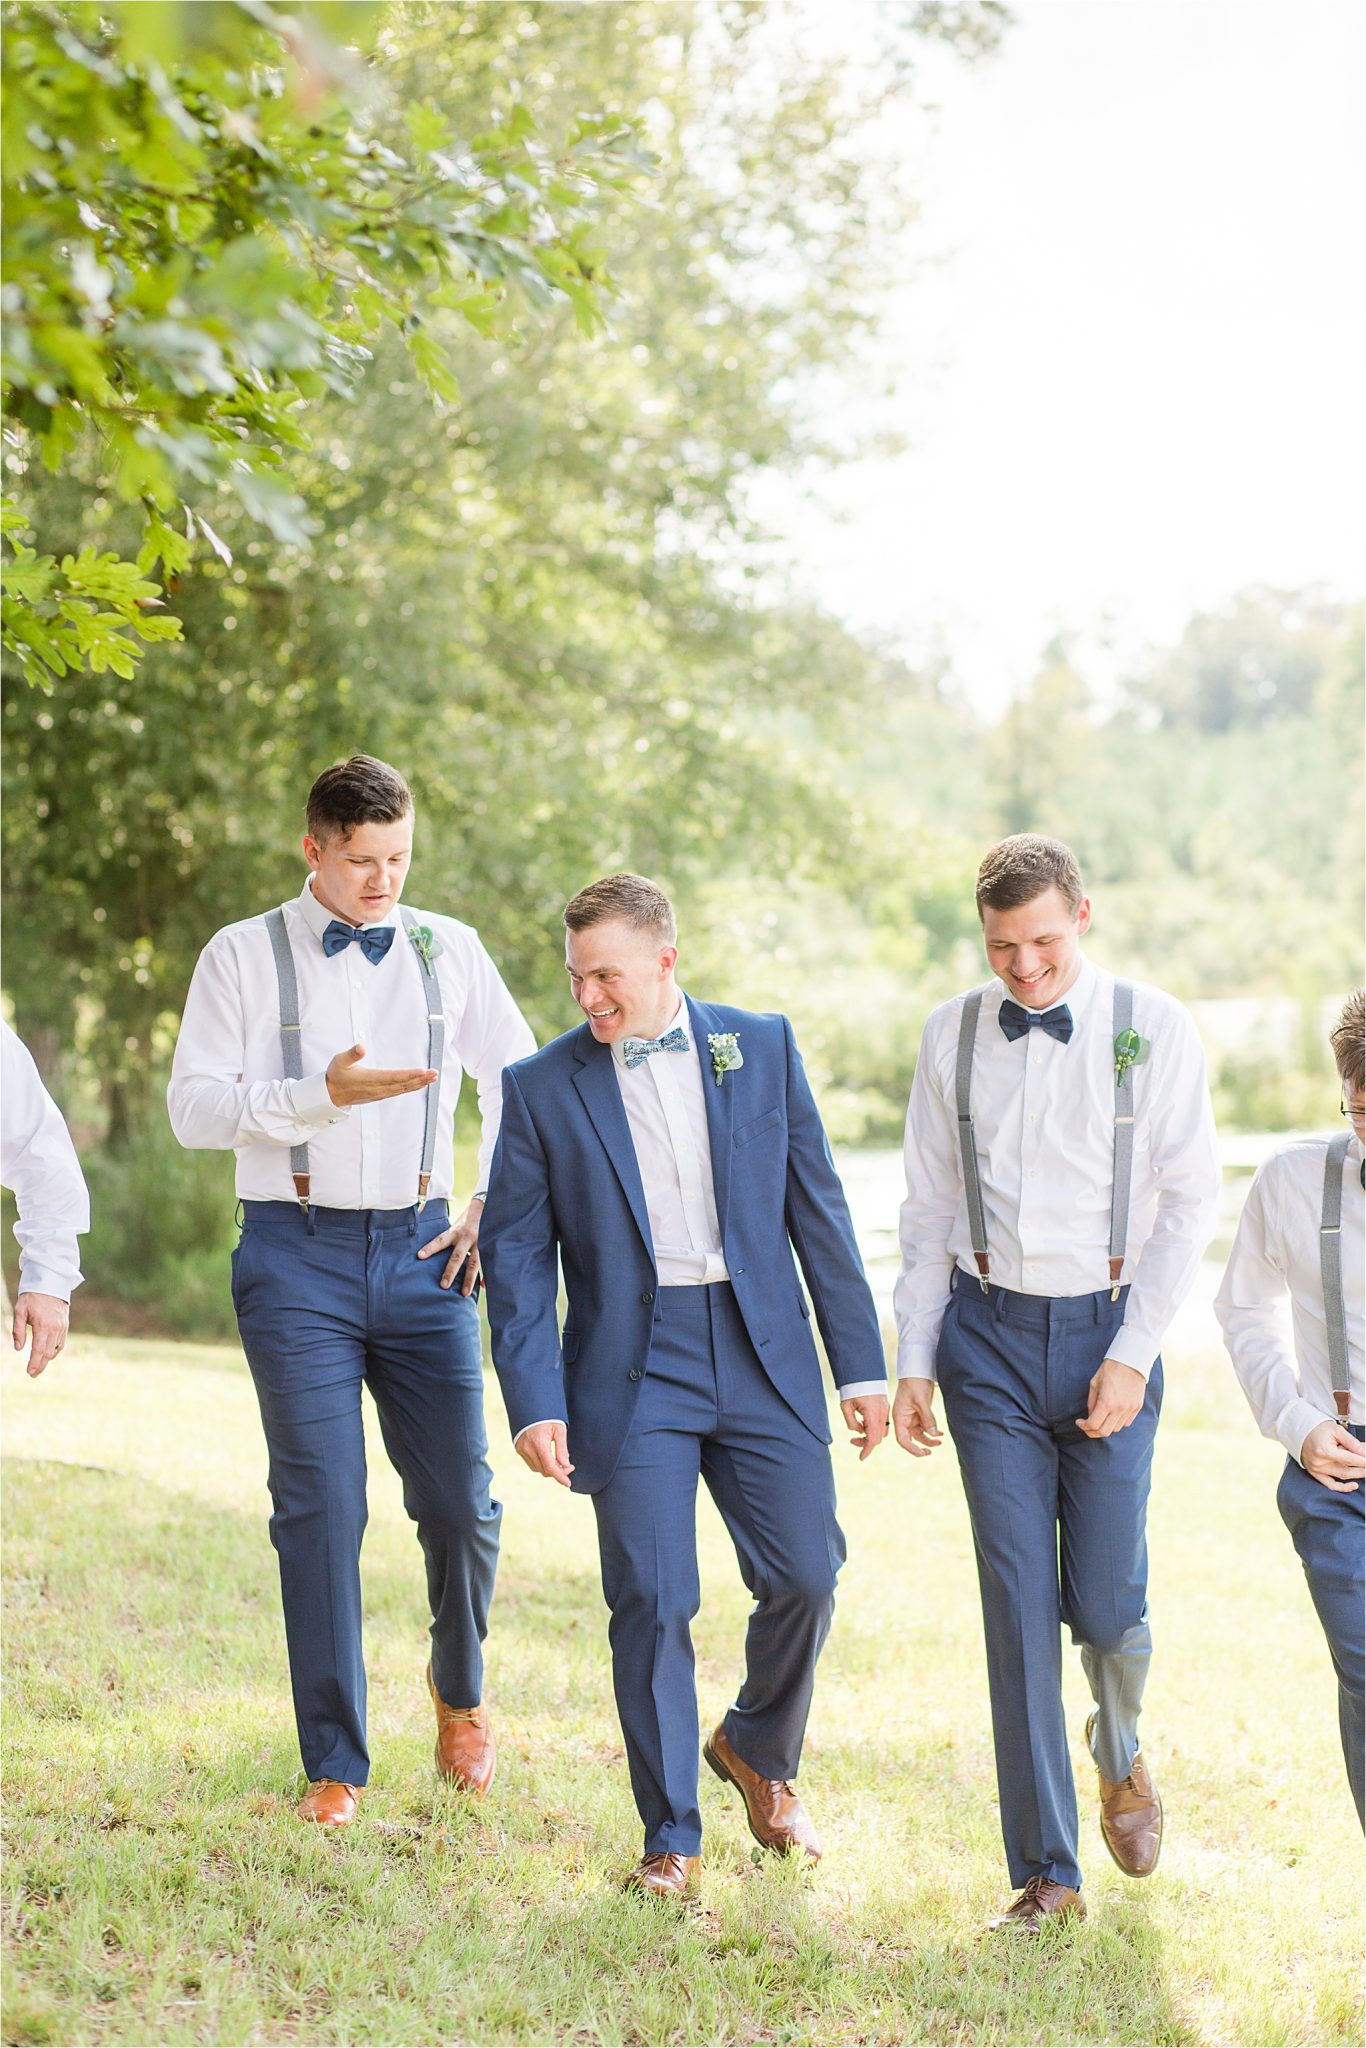 groom-groomsmen-blue-navy-bow-tie-suspenders-brown-shoes